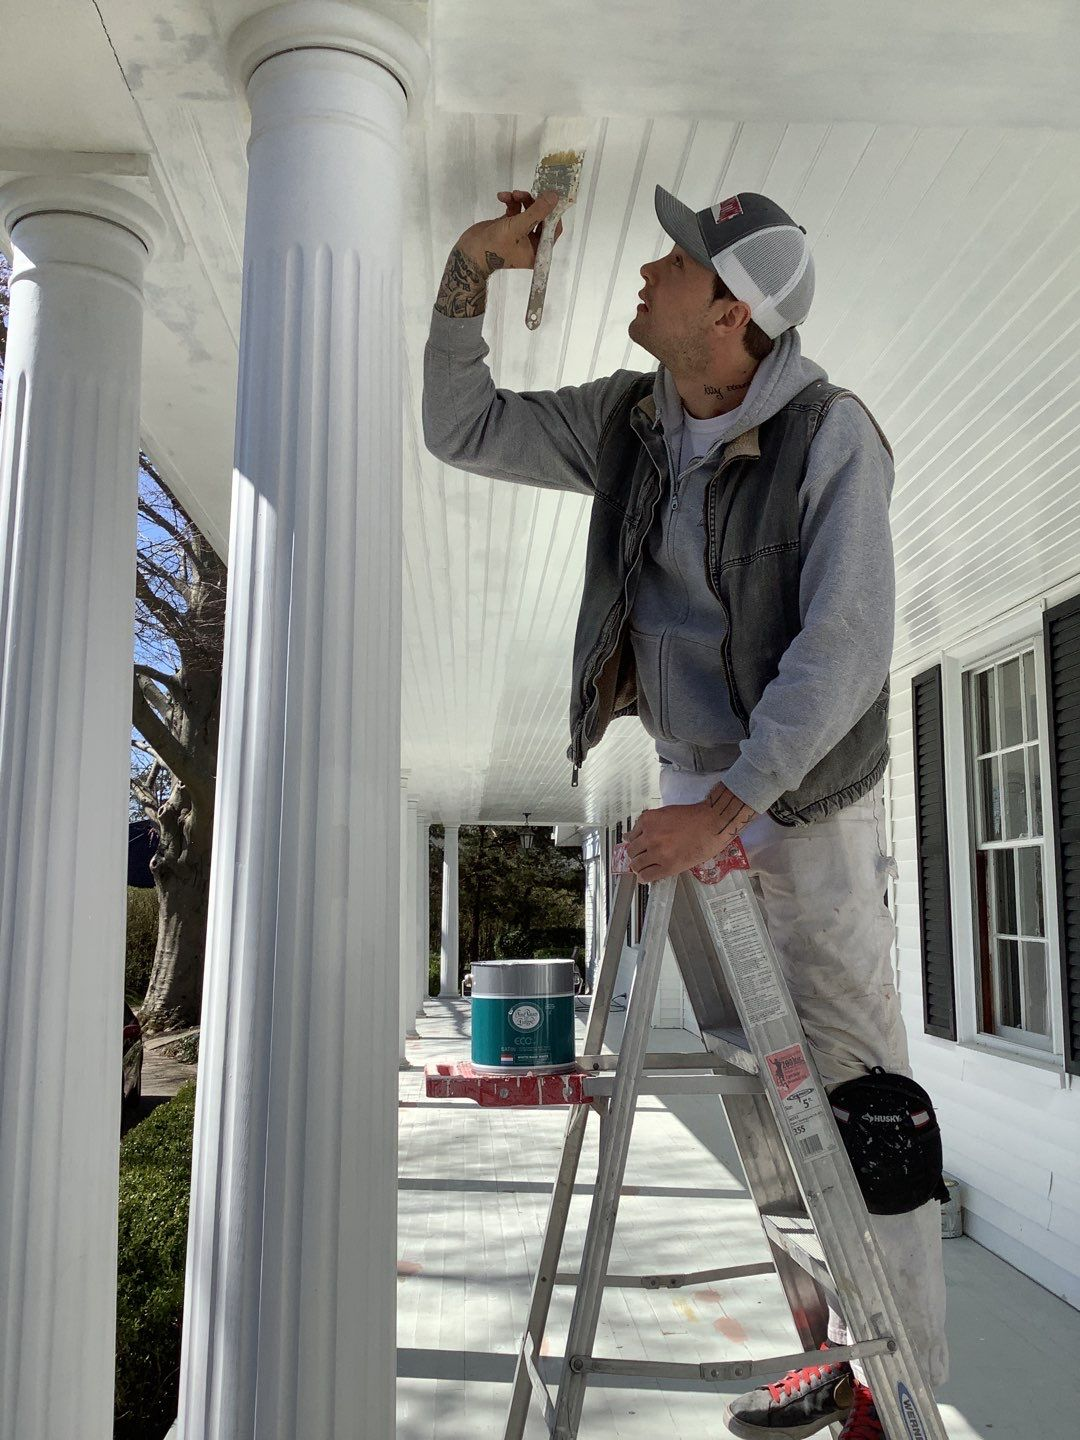 Bruno Painting increases curb appeal